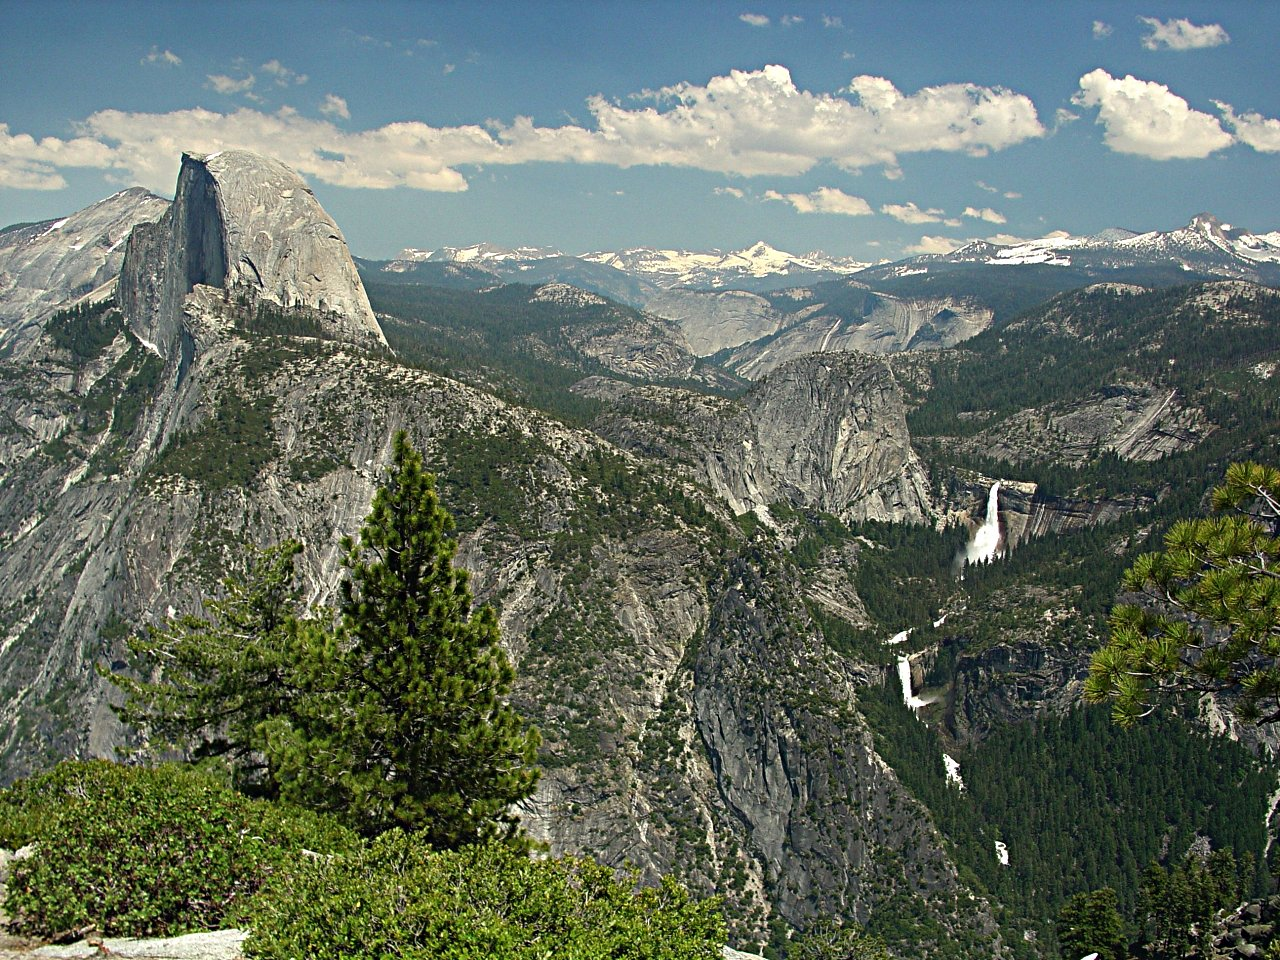 Half Dome and Nevada Falls as viewed from Glacier Point